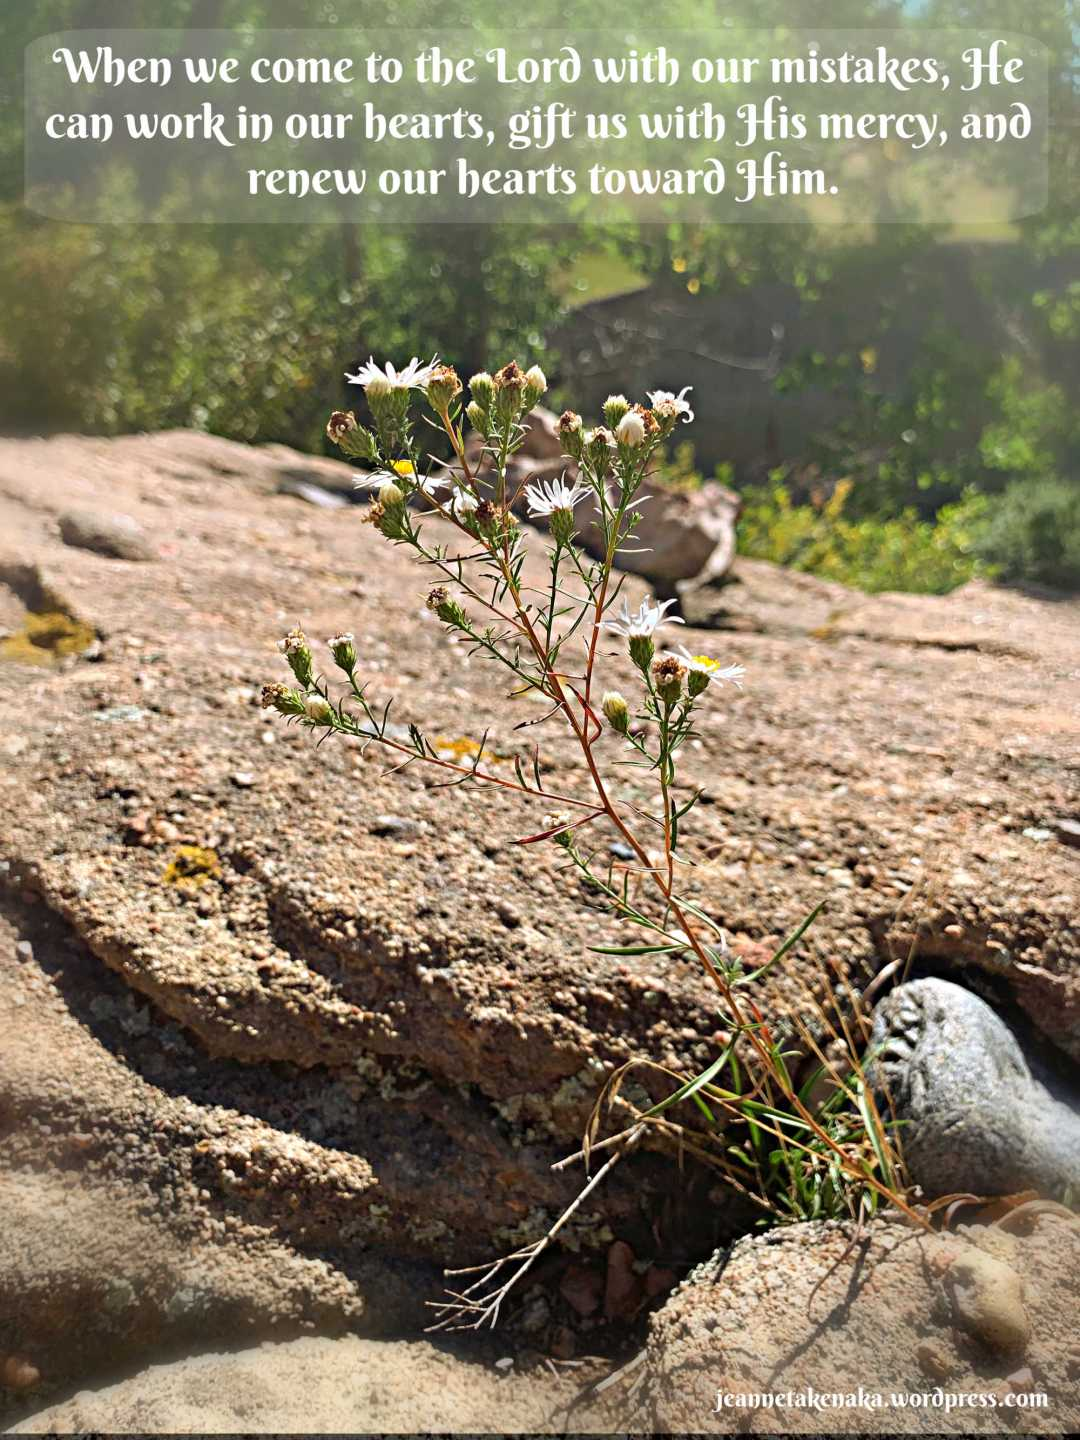 """Meme: """"when we come to the Lord with our mistakes, He can work in our hearts, gift us with His mercy and renew our hearts toward him."""" on a backdrop of wildflowers growing out of a crevice between rocks"""